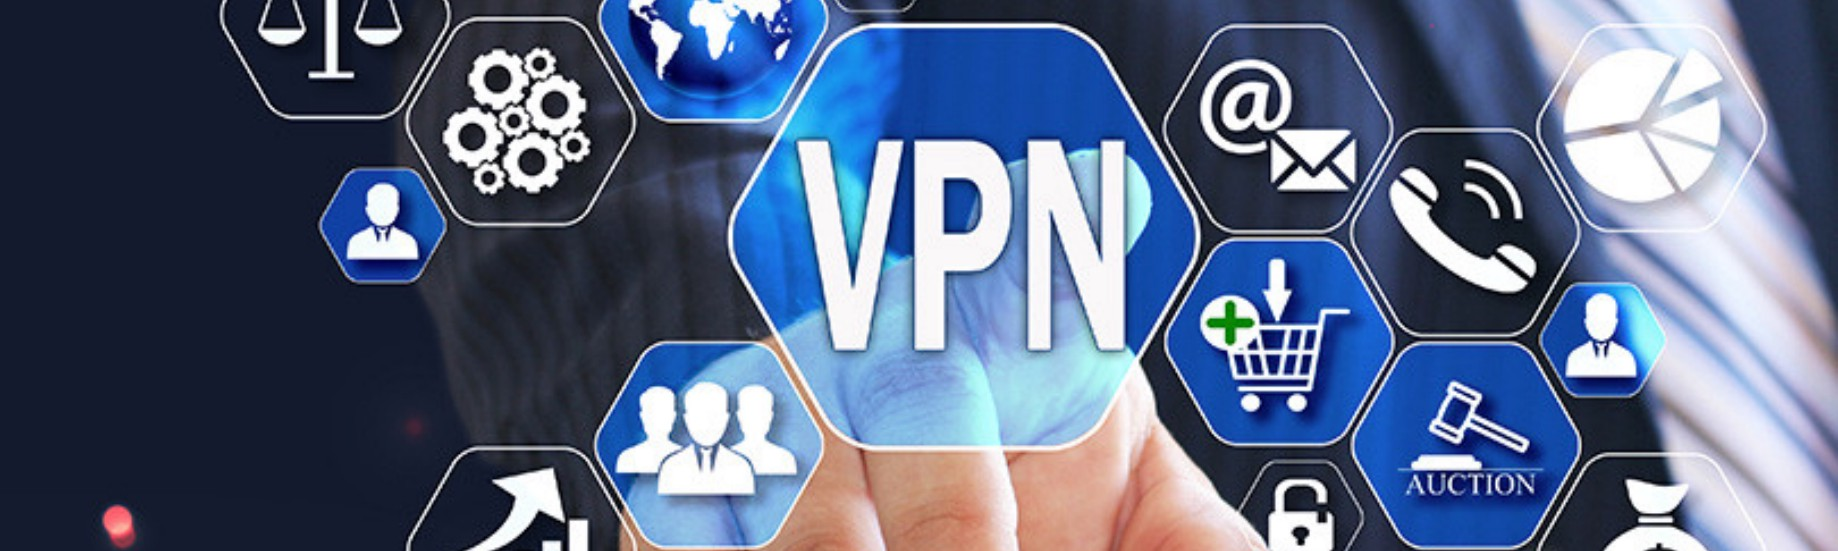 How To Pick the Right VPN Service for Your Business | PCMag